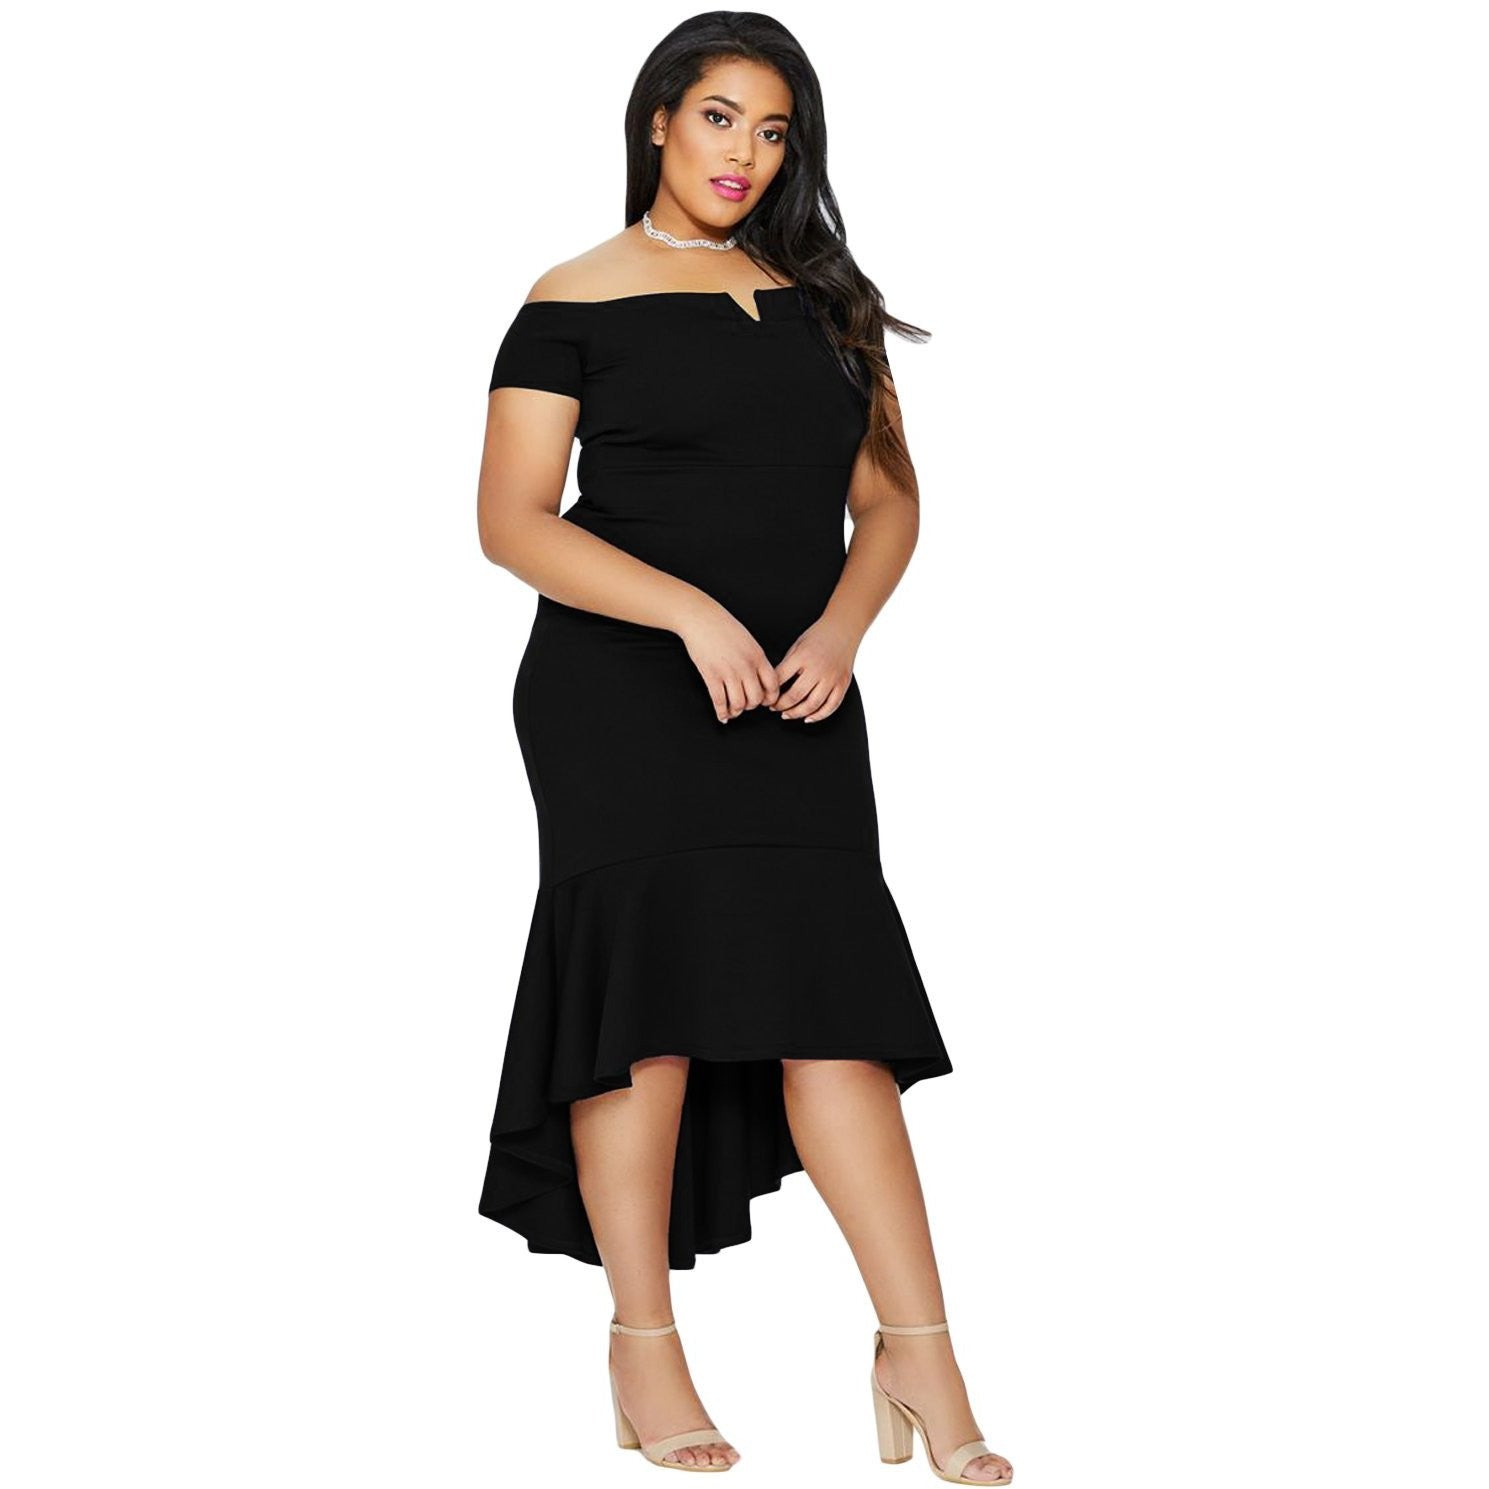 KELLIPS Black Plus Size Fishtail Midi Dress - KELLIPS